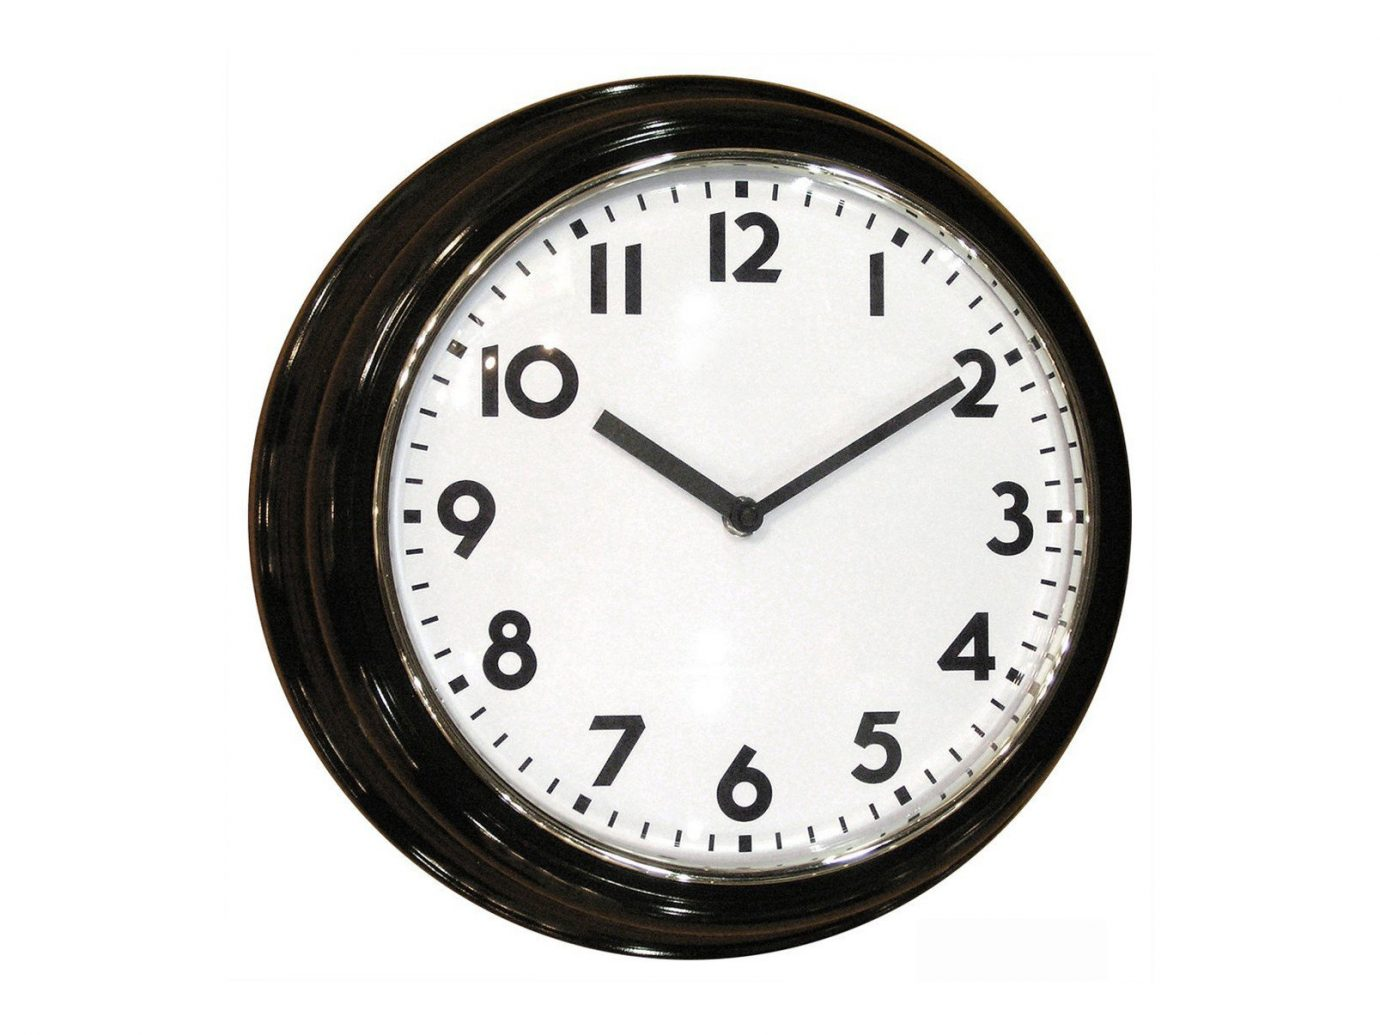 Amsterdam Style + Design The Netherlands Travel Shop clock home accessories wall clock time product design